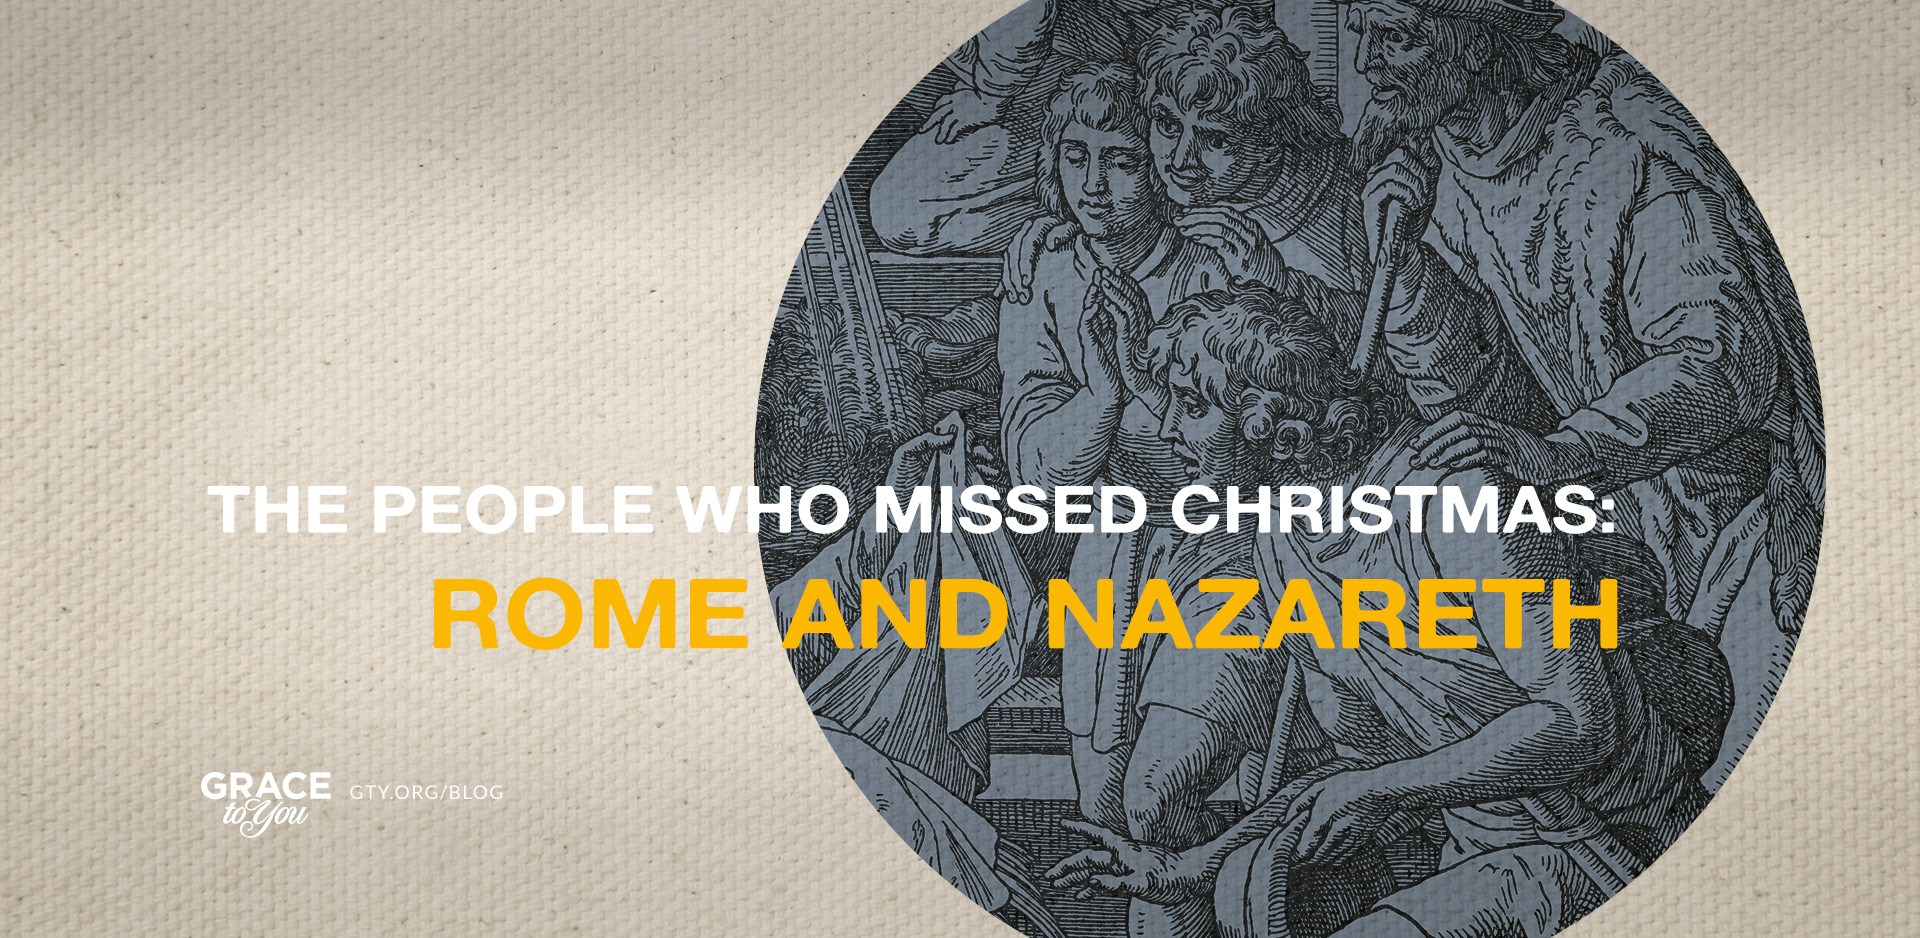 The People Who Missed Christmas: Rome and Nazareth